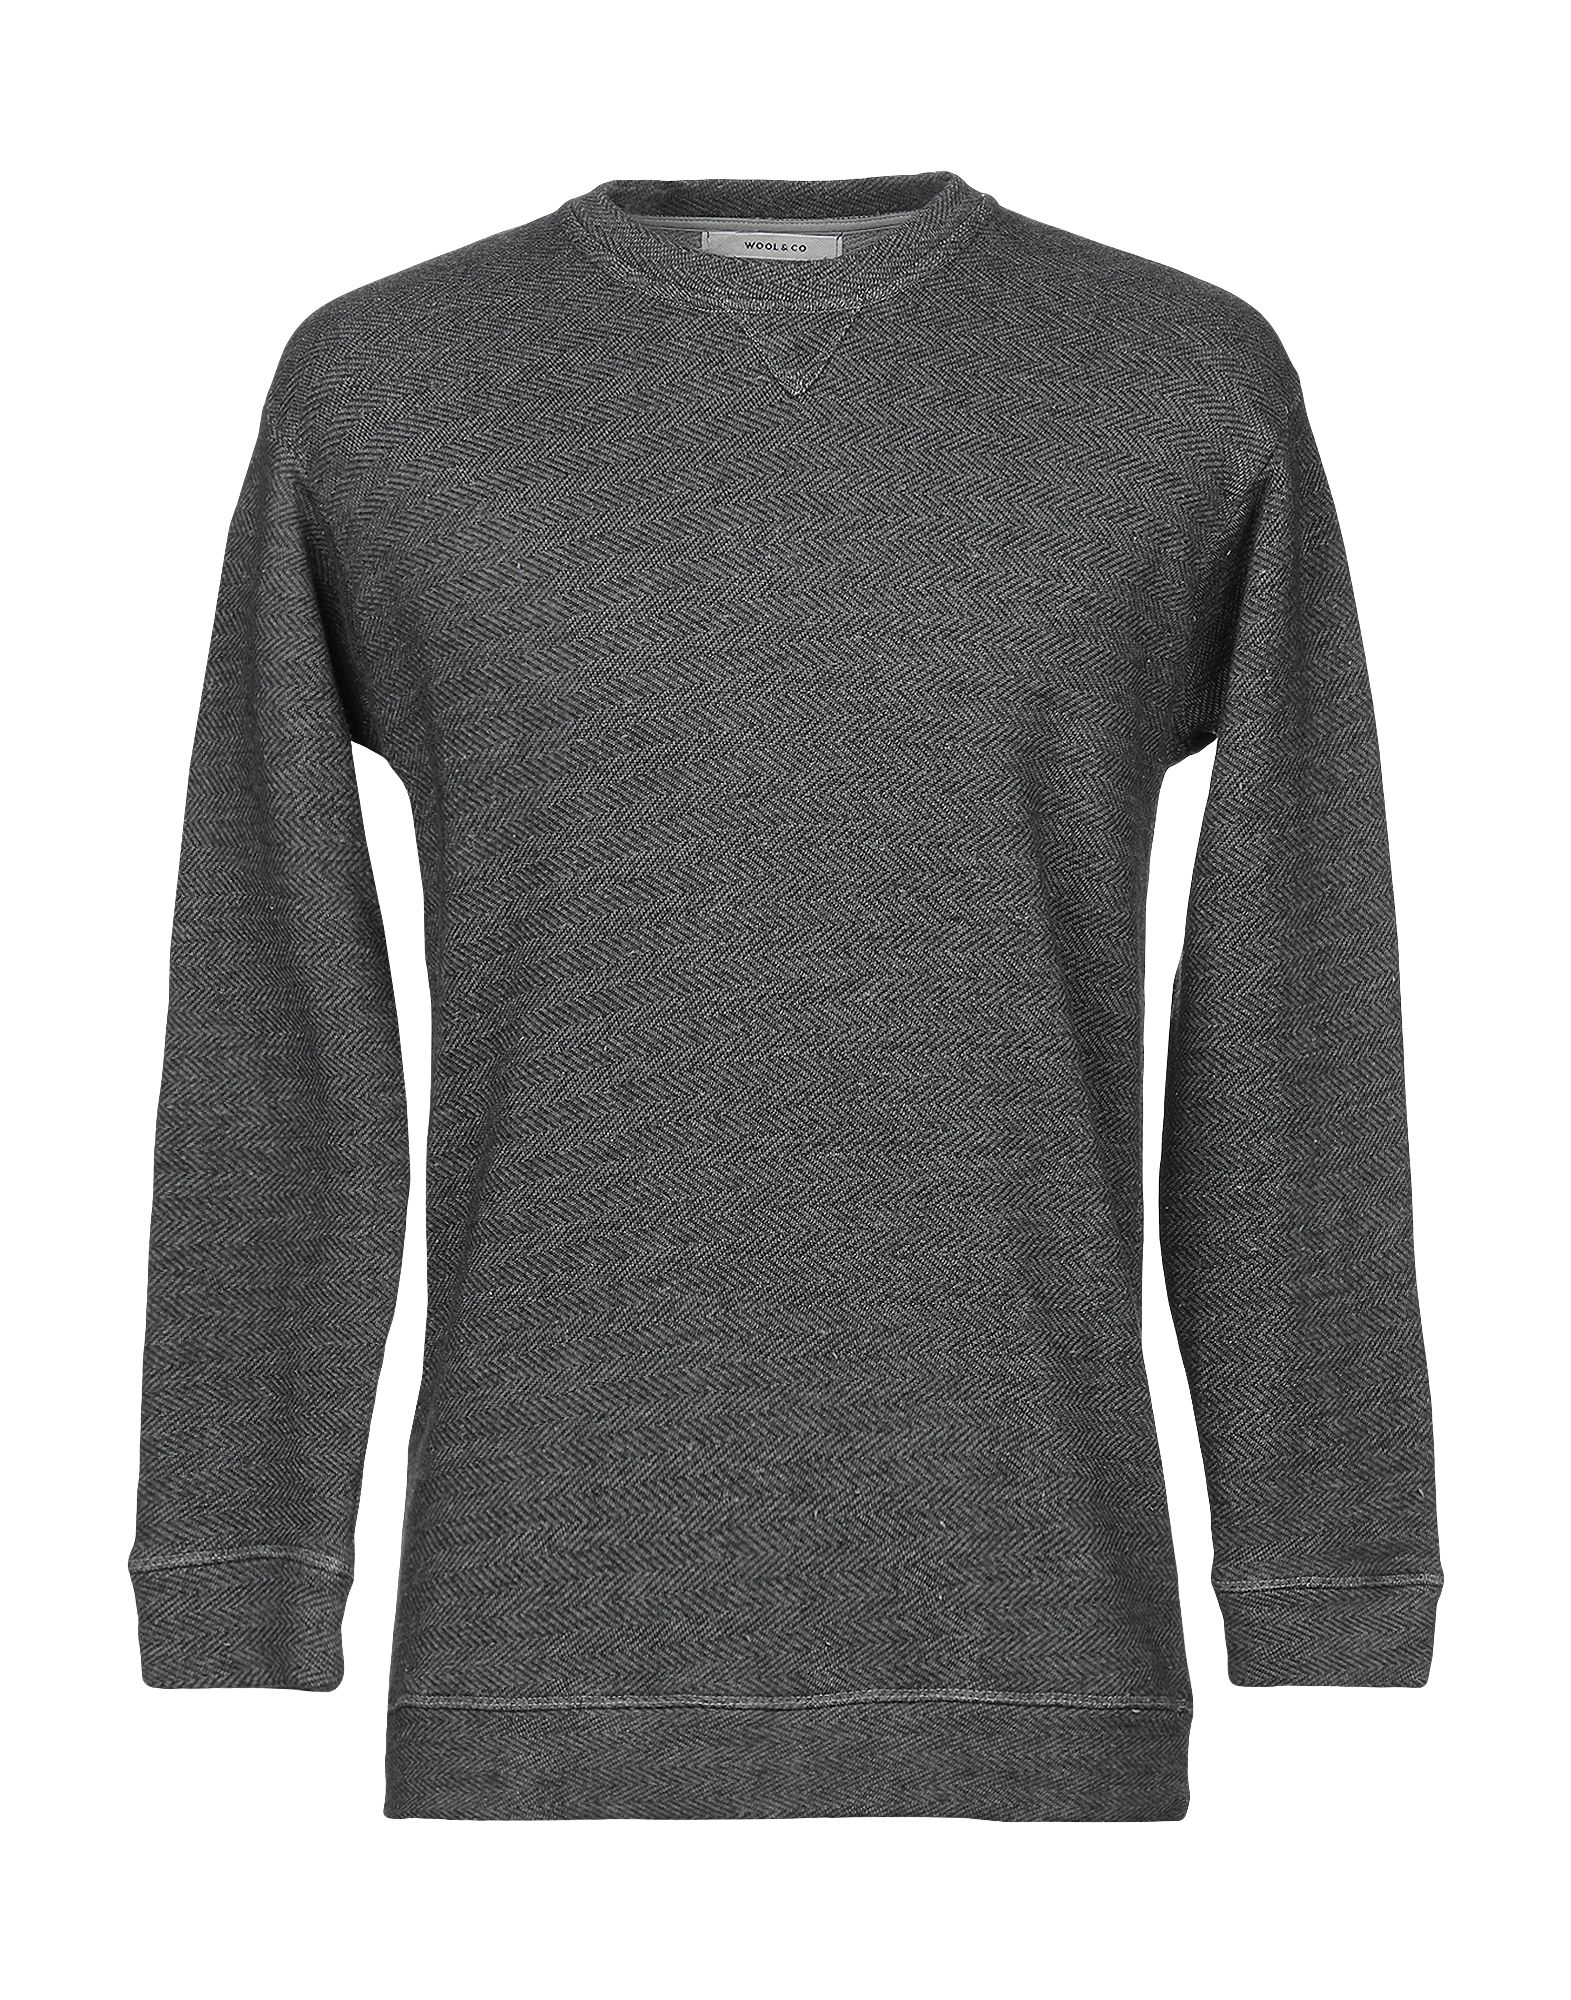 WOOL & CO Sweatshirts. no appliqués, herringbone, round collar, long sleeves, no pockets, french terry lining, small sized. 58% Cotton, 42% Polyester